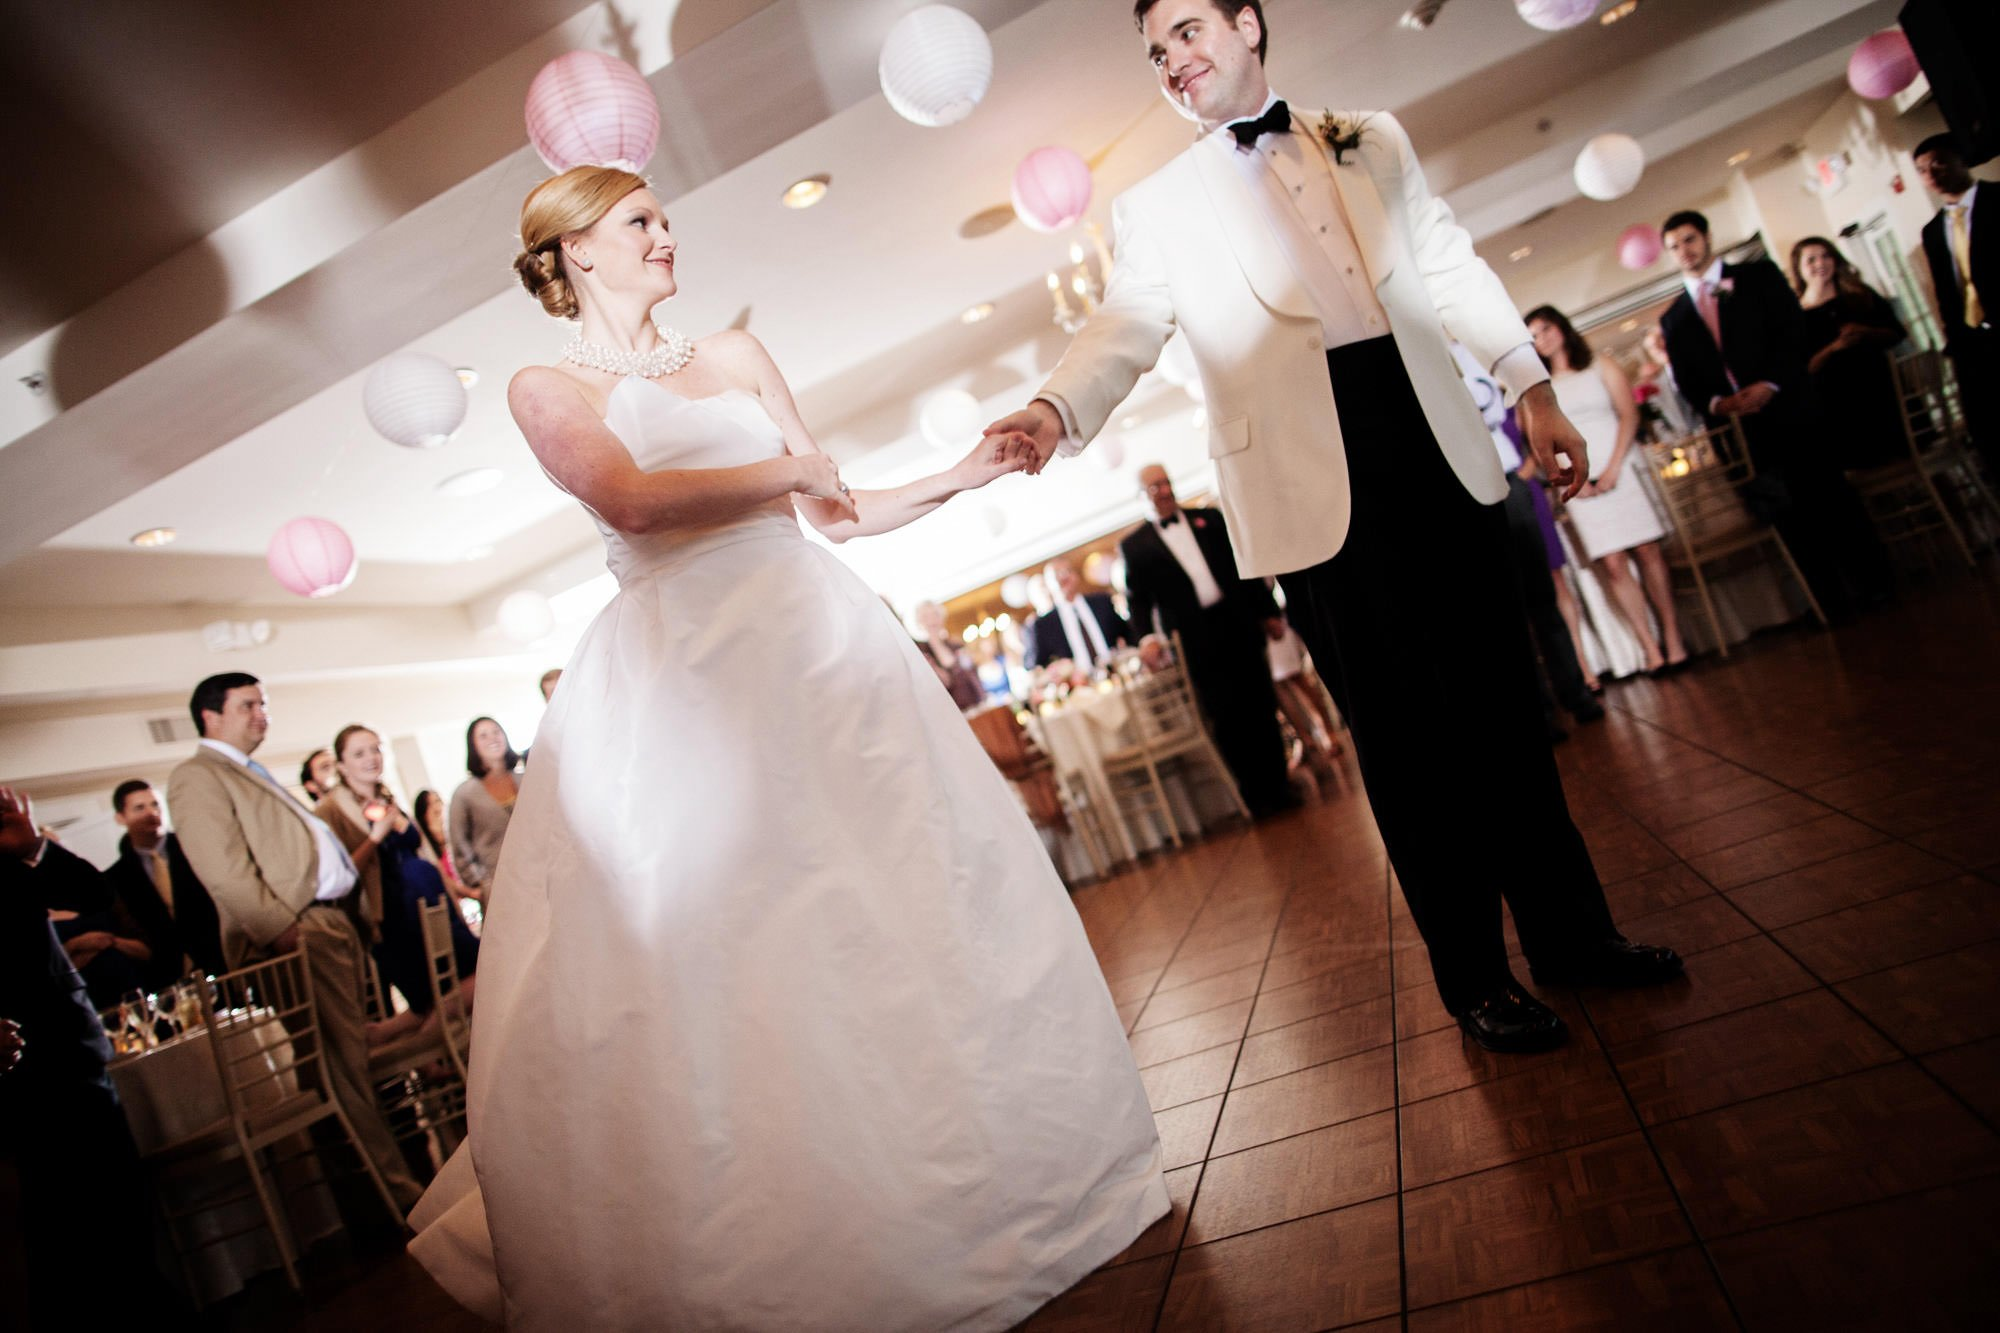 The bride and groom dance during the wedding reception at Oaks Waterfront Inn and Events.